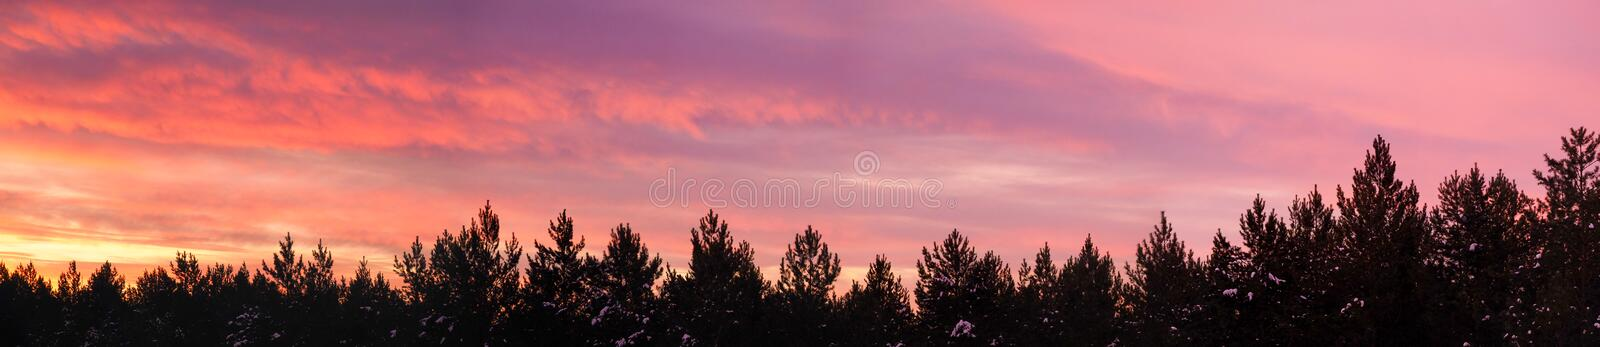 The morning sun rises above the pines. The sky turned pink lilac colors stock photo